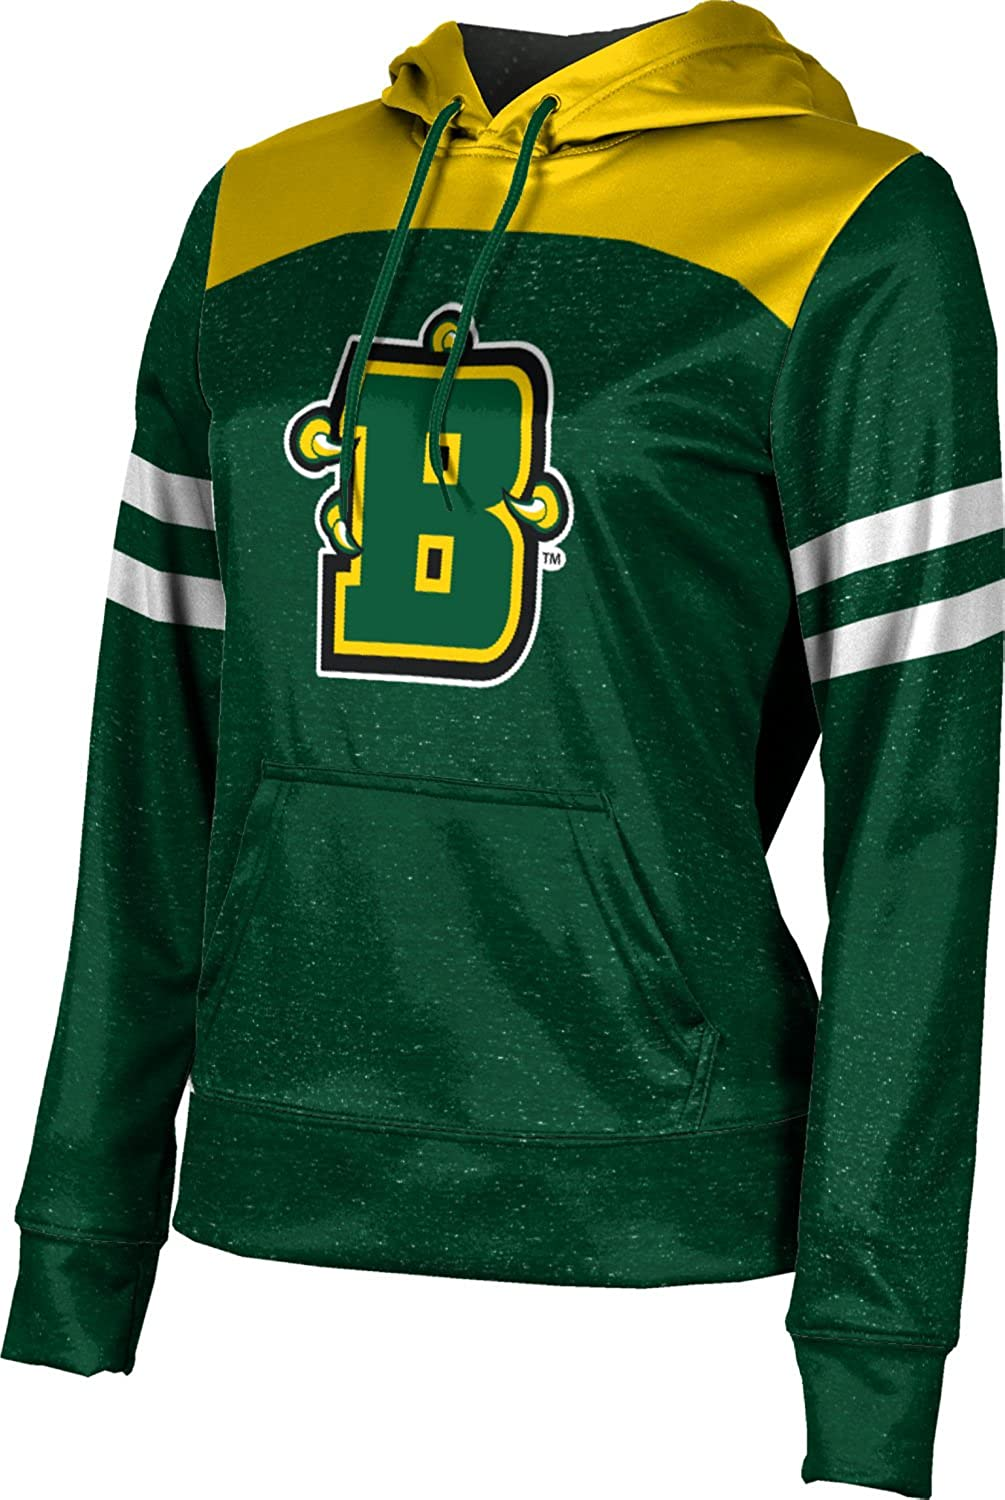 71b407ab53 Prime Clothing Active Sweatshirts ProSphere College at Brockport Boys  Pullover Hoodie